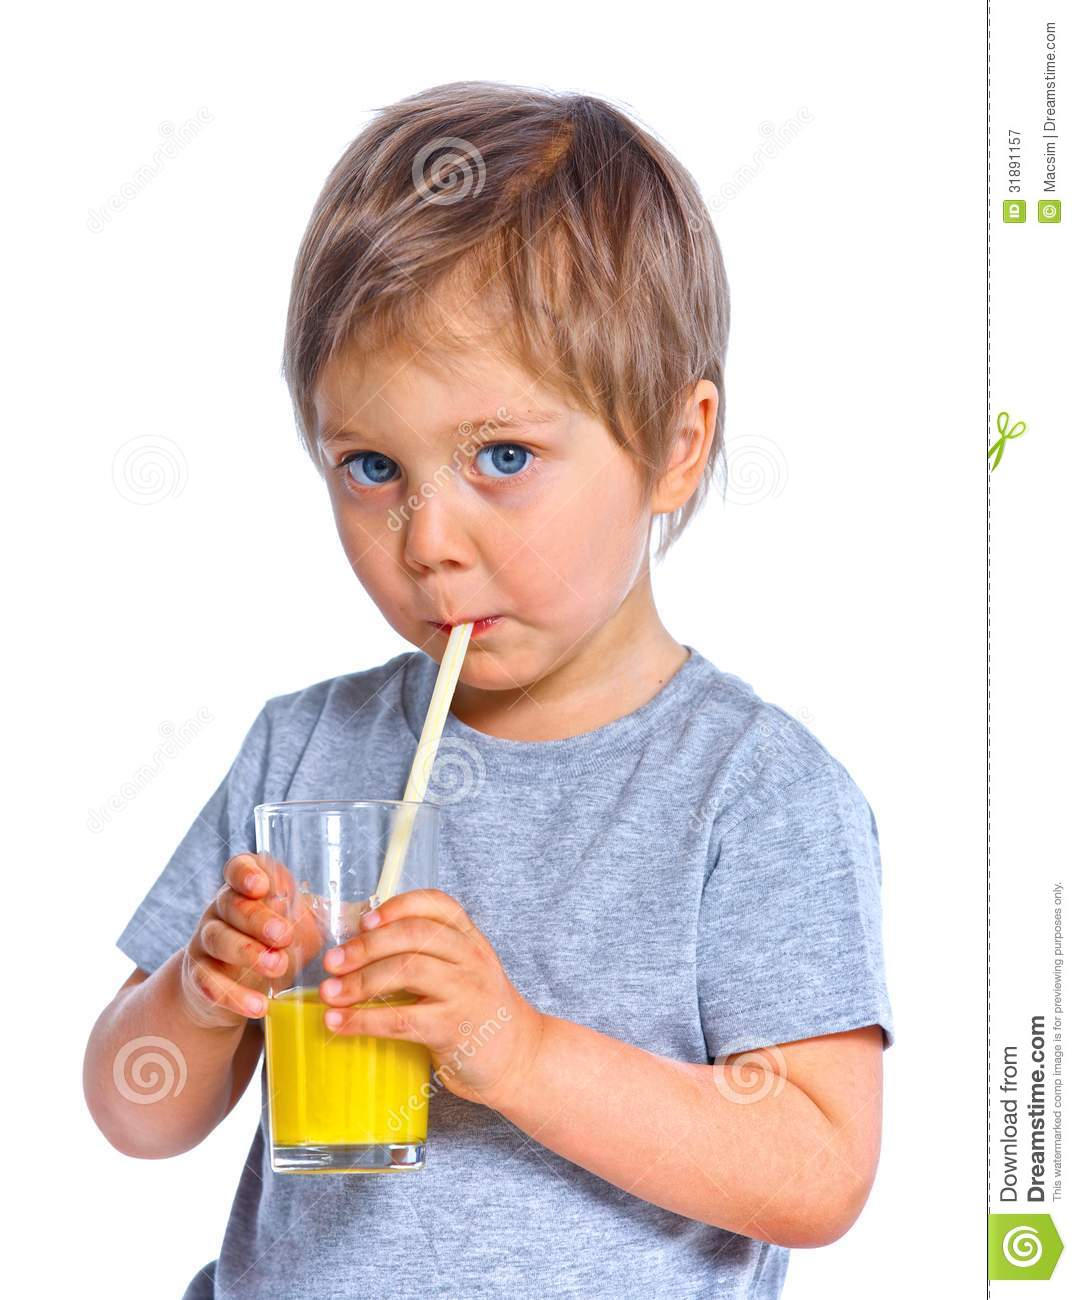 Http Www Dreamstime Com Royalty Free Stock Photography Little Boy Drinking Orange Juice Portrait Happy Isolated Over White Background Image31891157